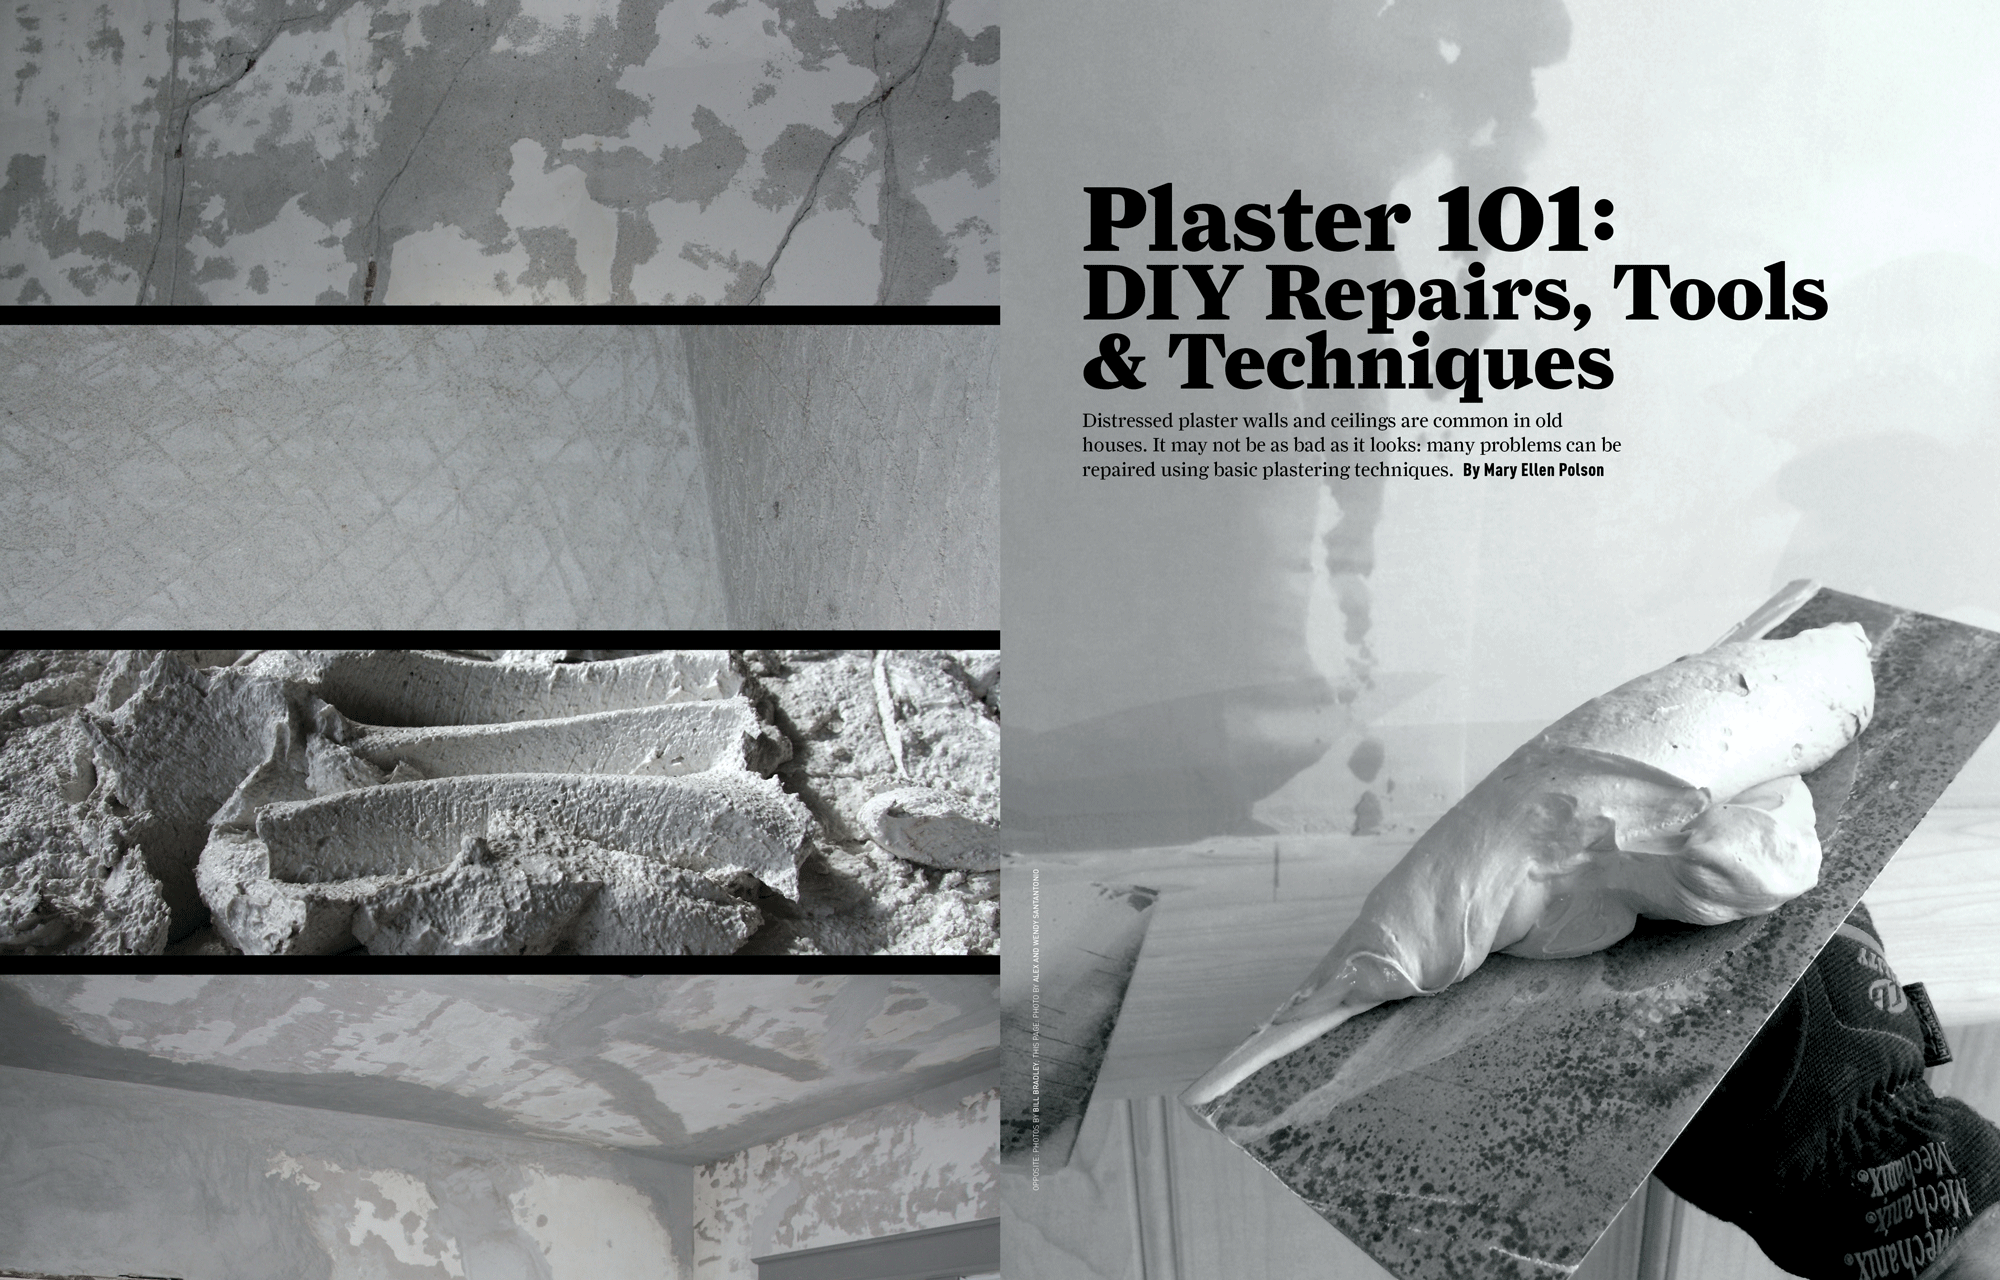 Plaster 101 by Megan Hillman